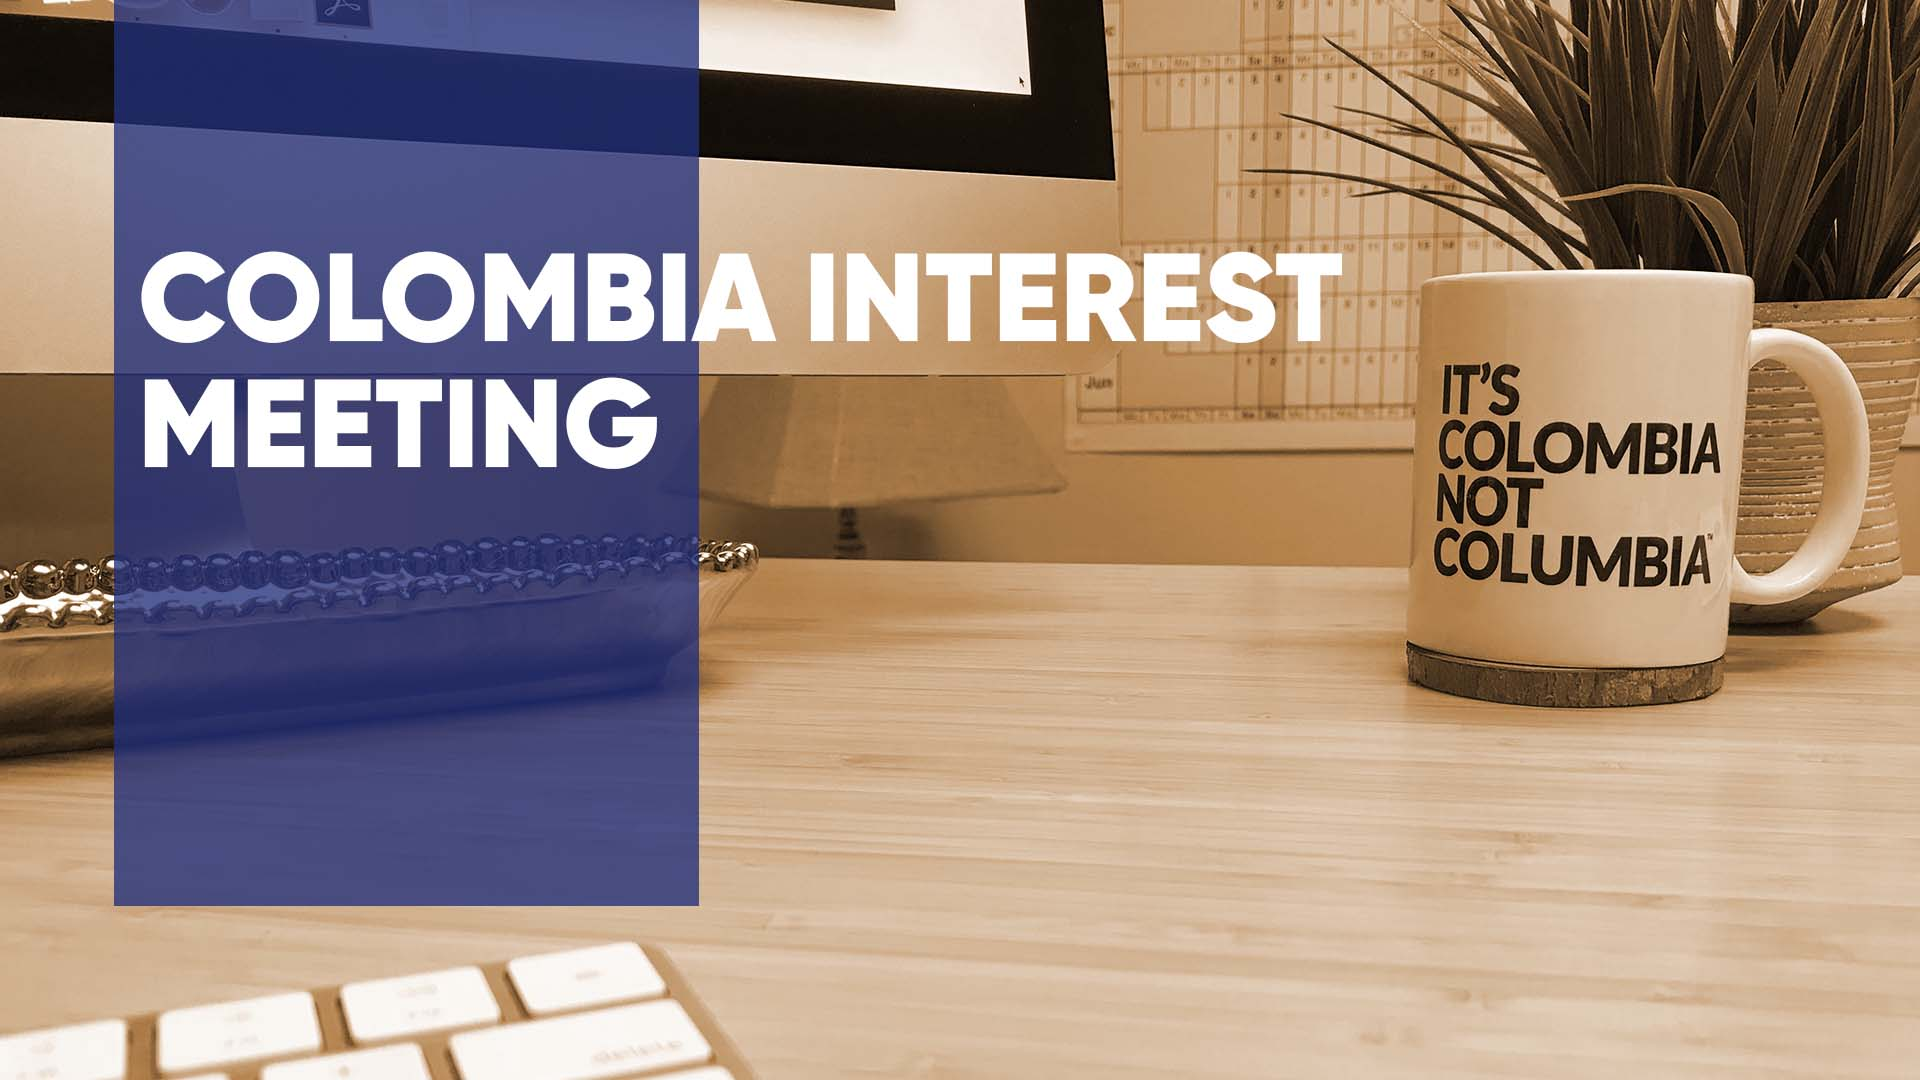 Colombia Interest Meeting